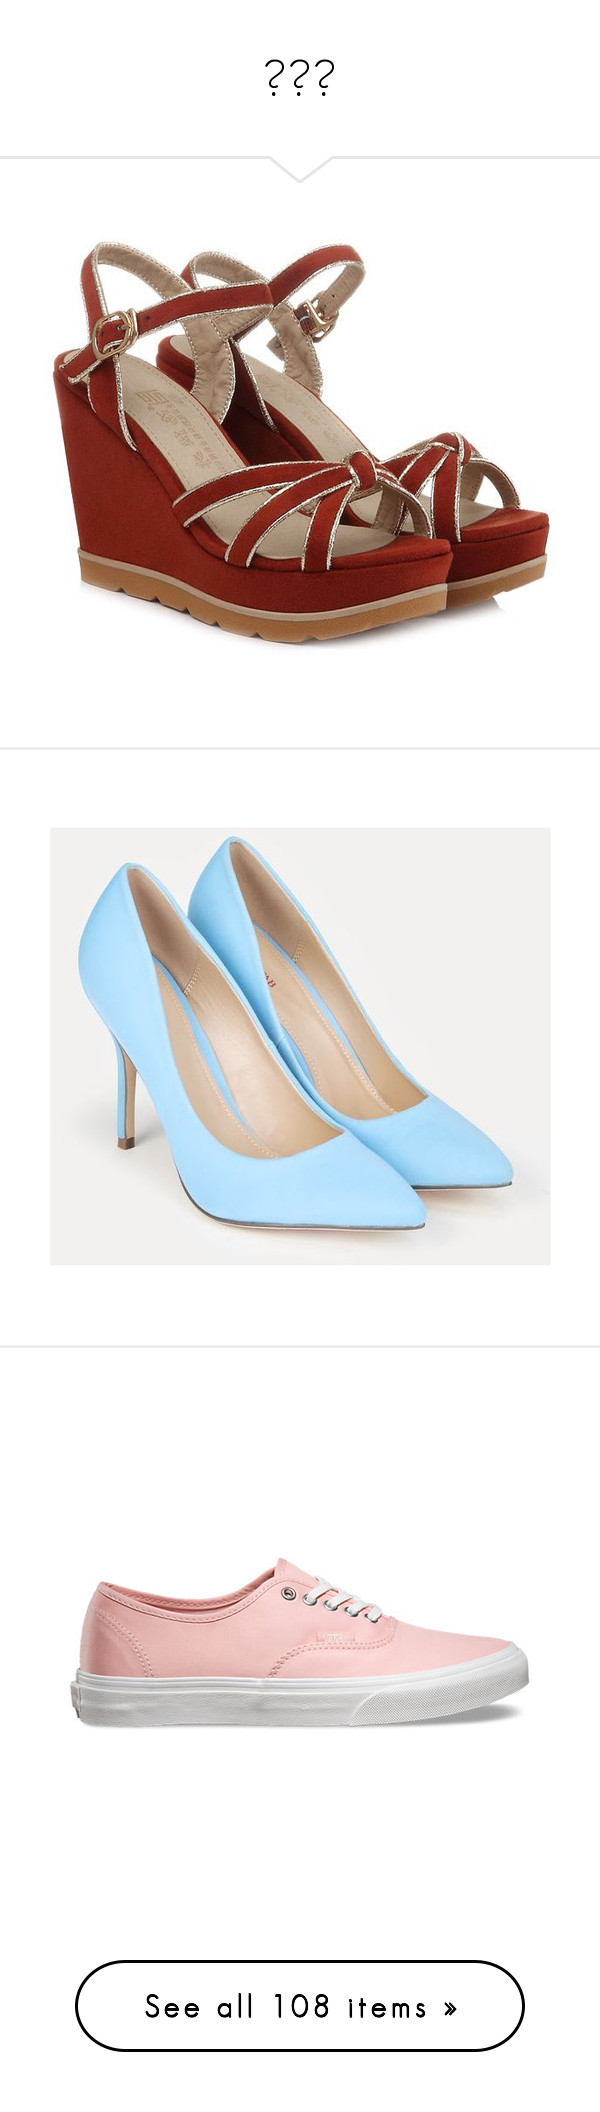 """"""""""" by mrspucey ❤ liked on Polyvore featuring shoes, sandals, wedge heel shoes, wedge sole shoes, wedge heel sandals, suede leather shoes, wedge sandals, pumps, heels and blue"""